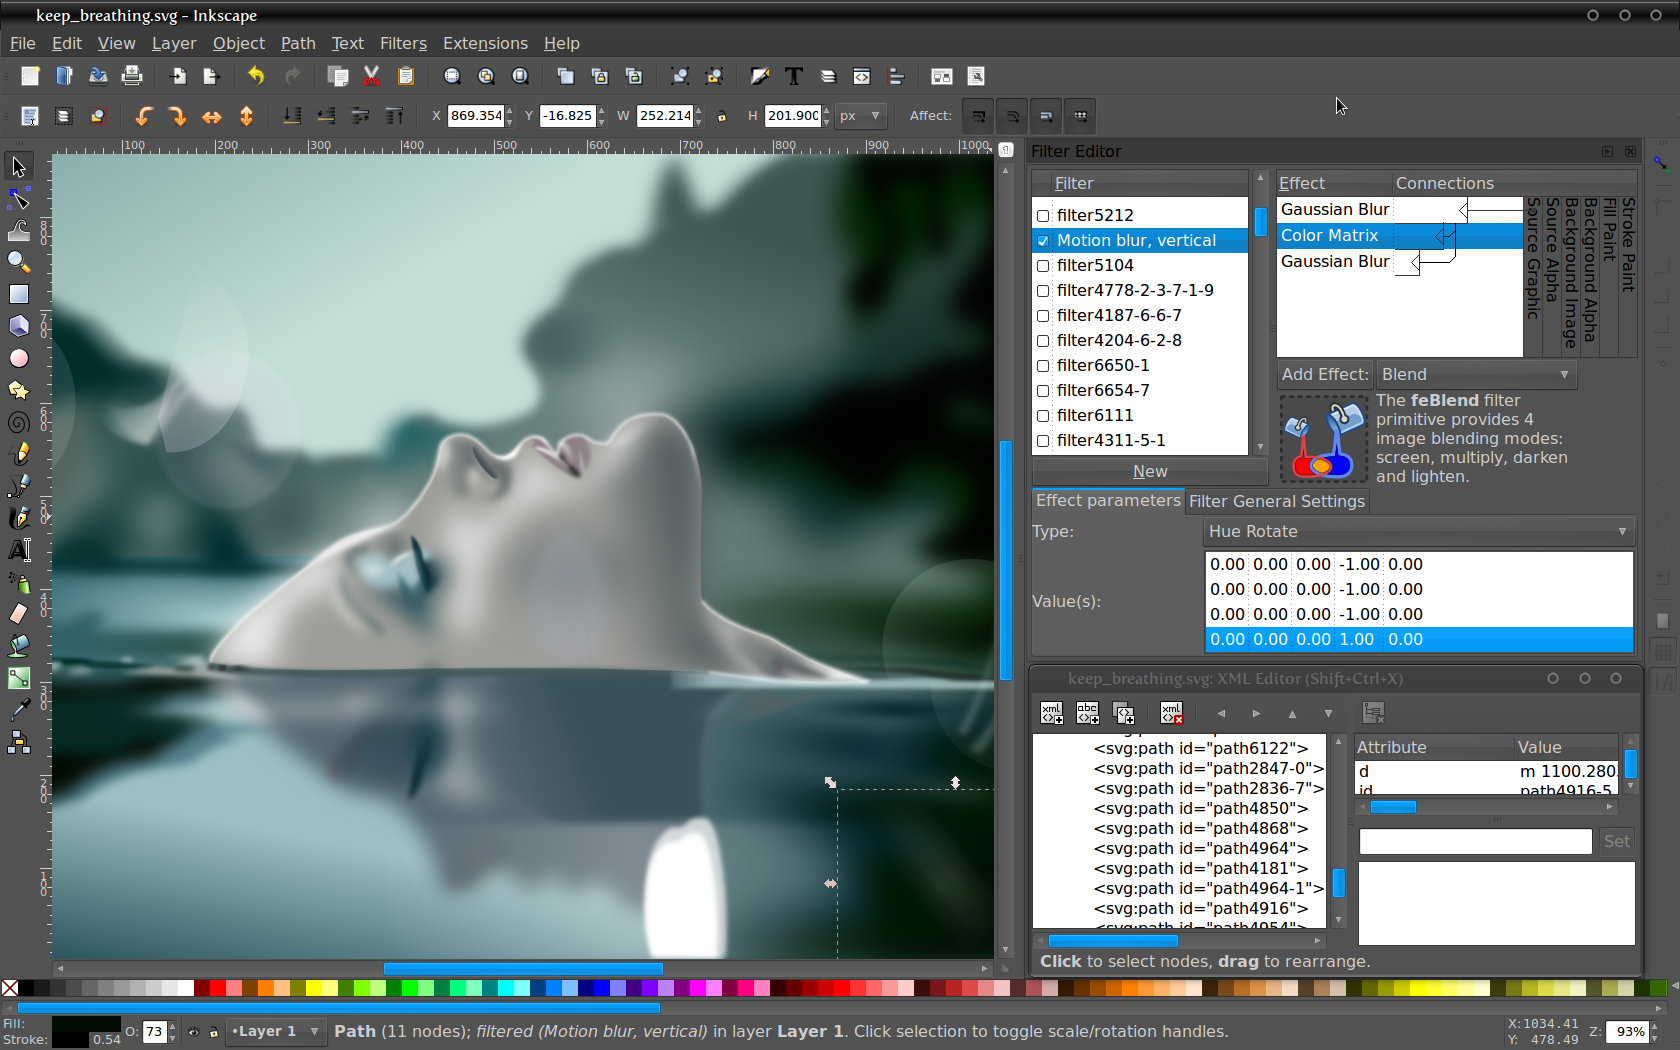 Do You Want To Know Best Free Photoshop Alternatives? Here Are The Details